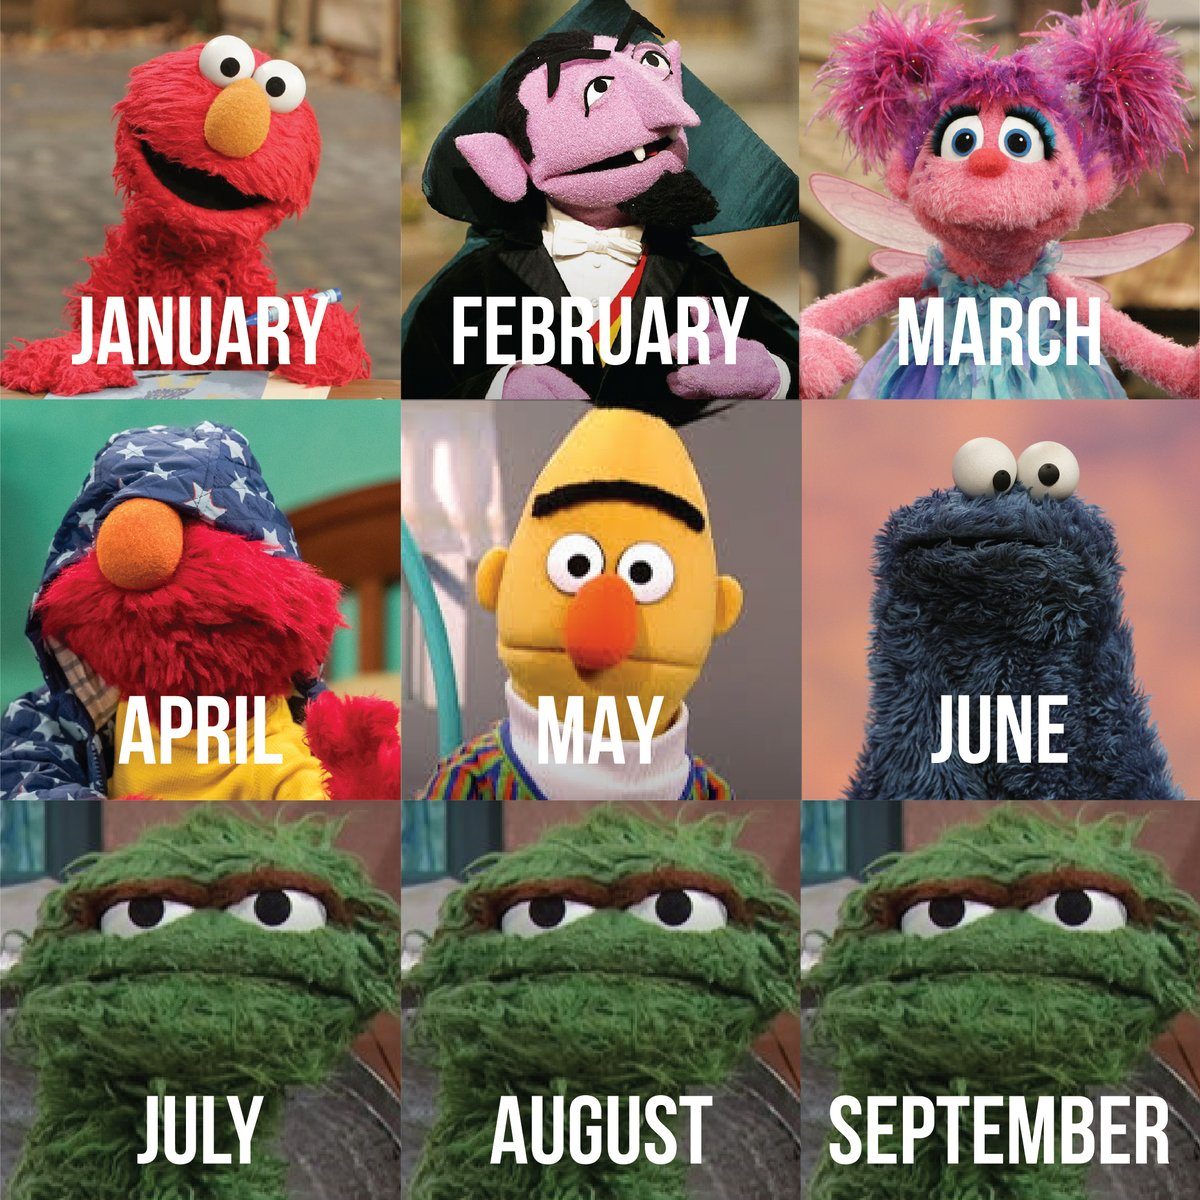 2020 as told by your friends on Sesame Street 🤣